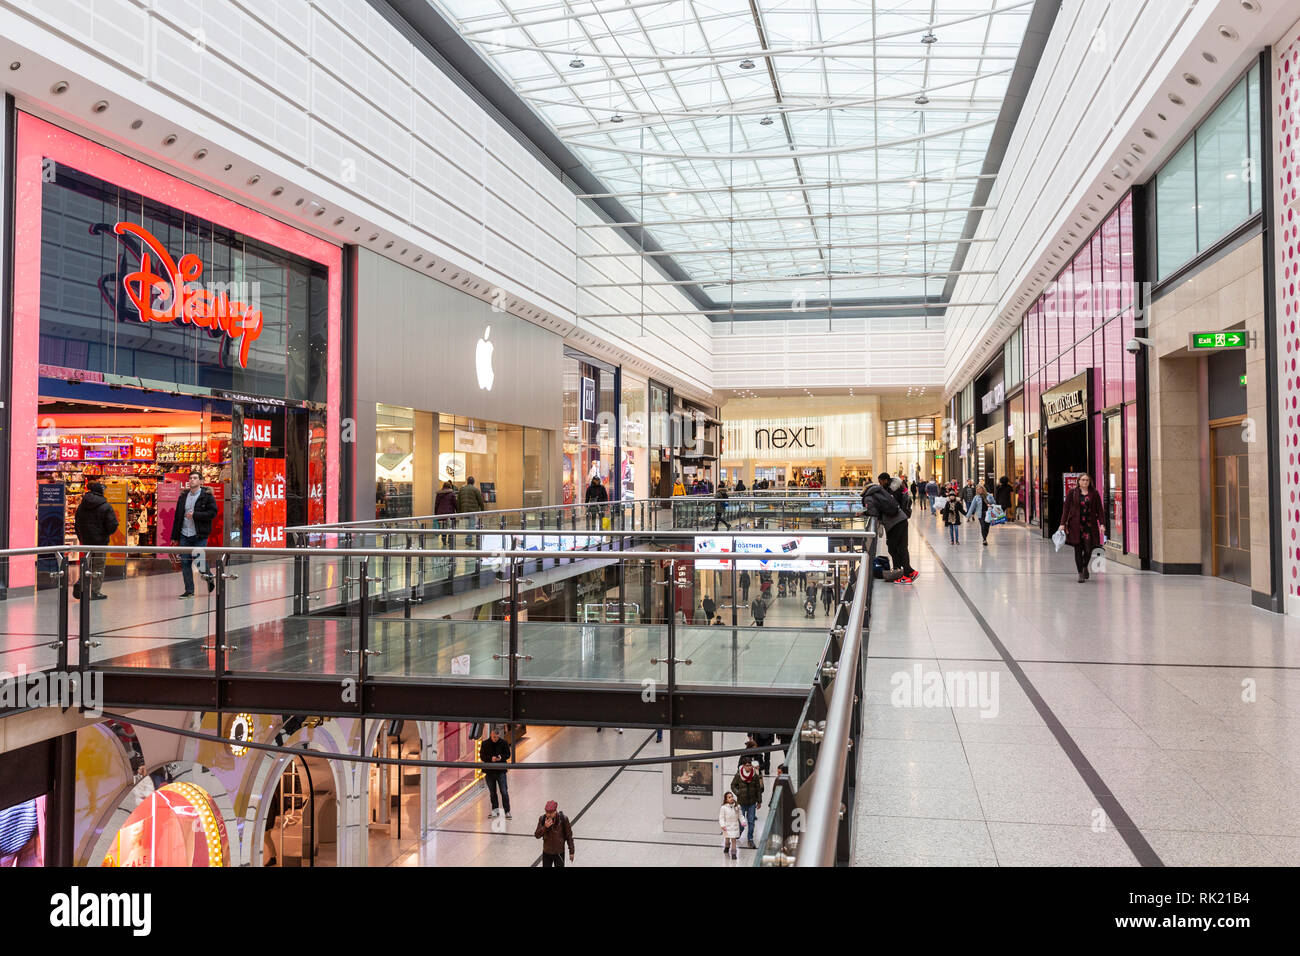 Interior of Manchester arndale centre with Disney store and Next store,Manchester,England - Stock Image